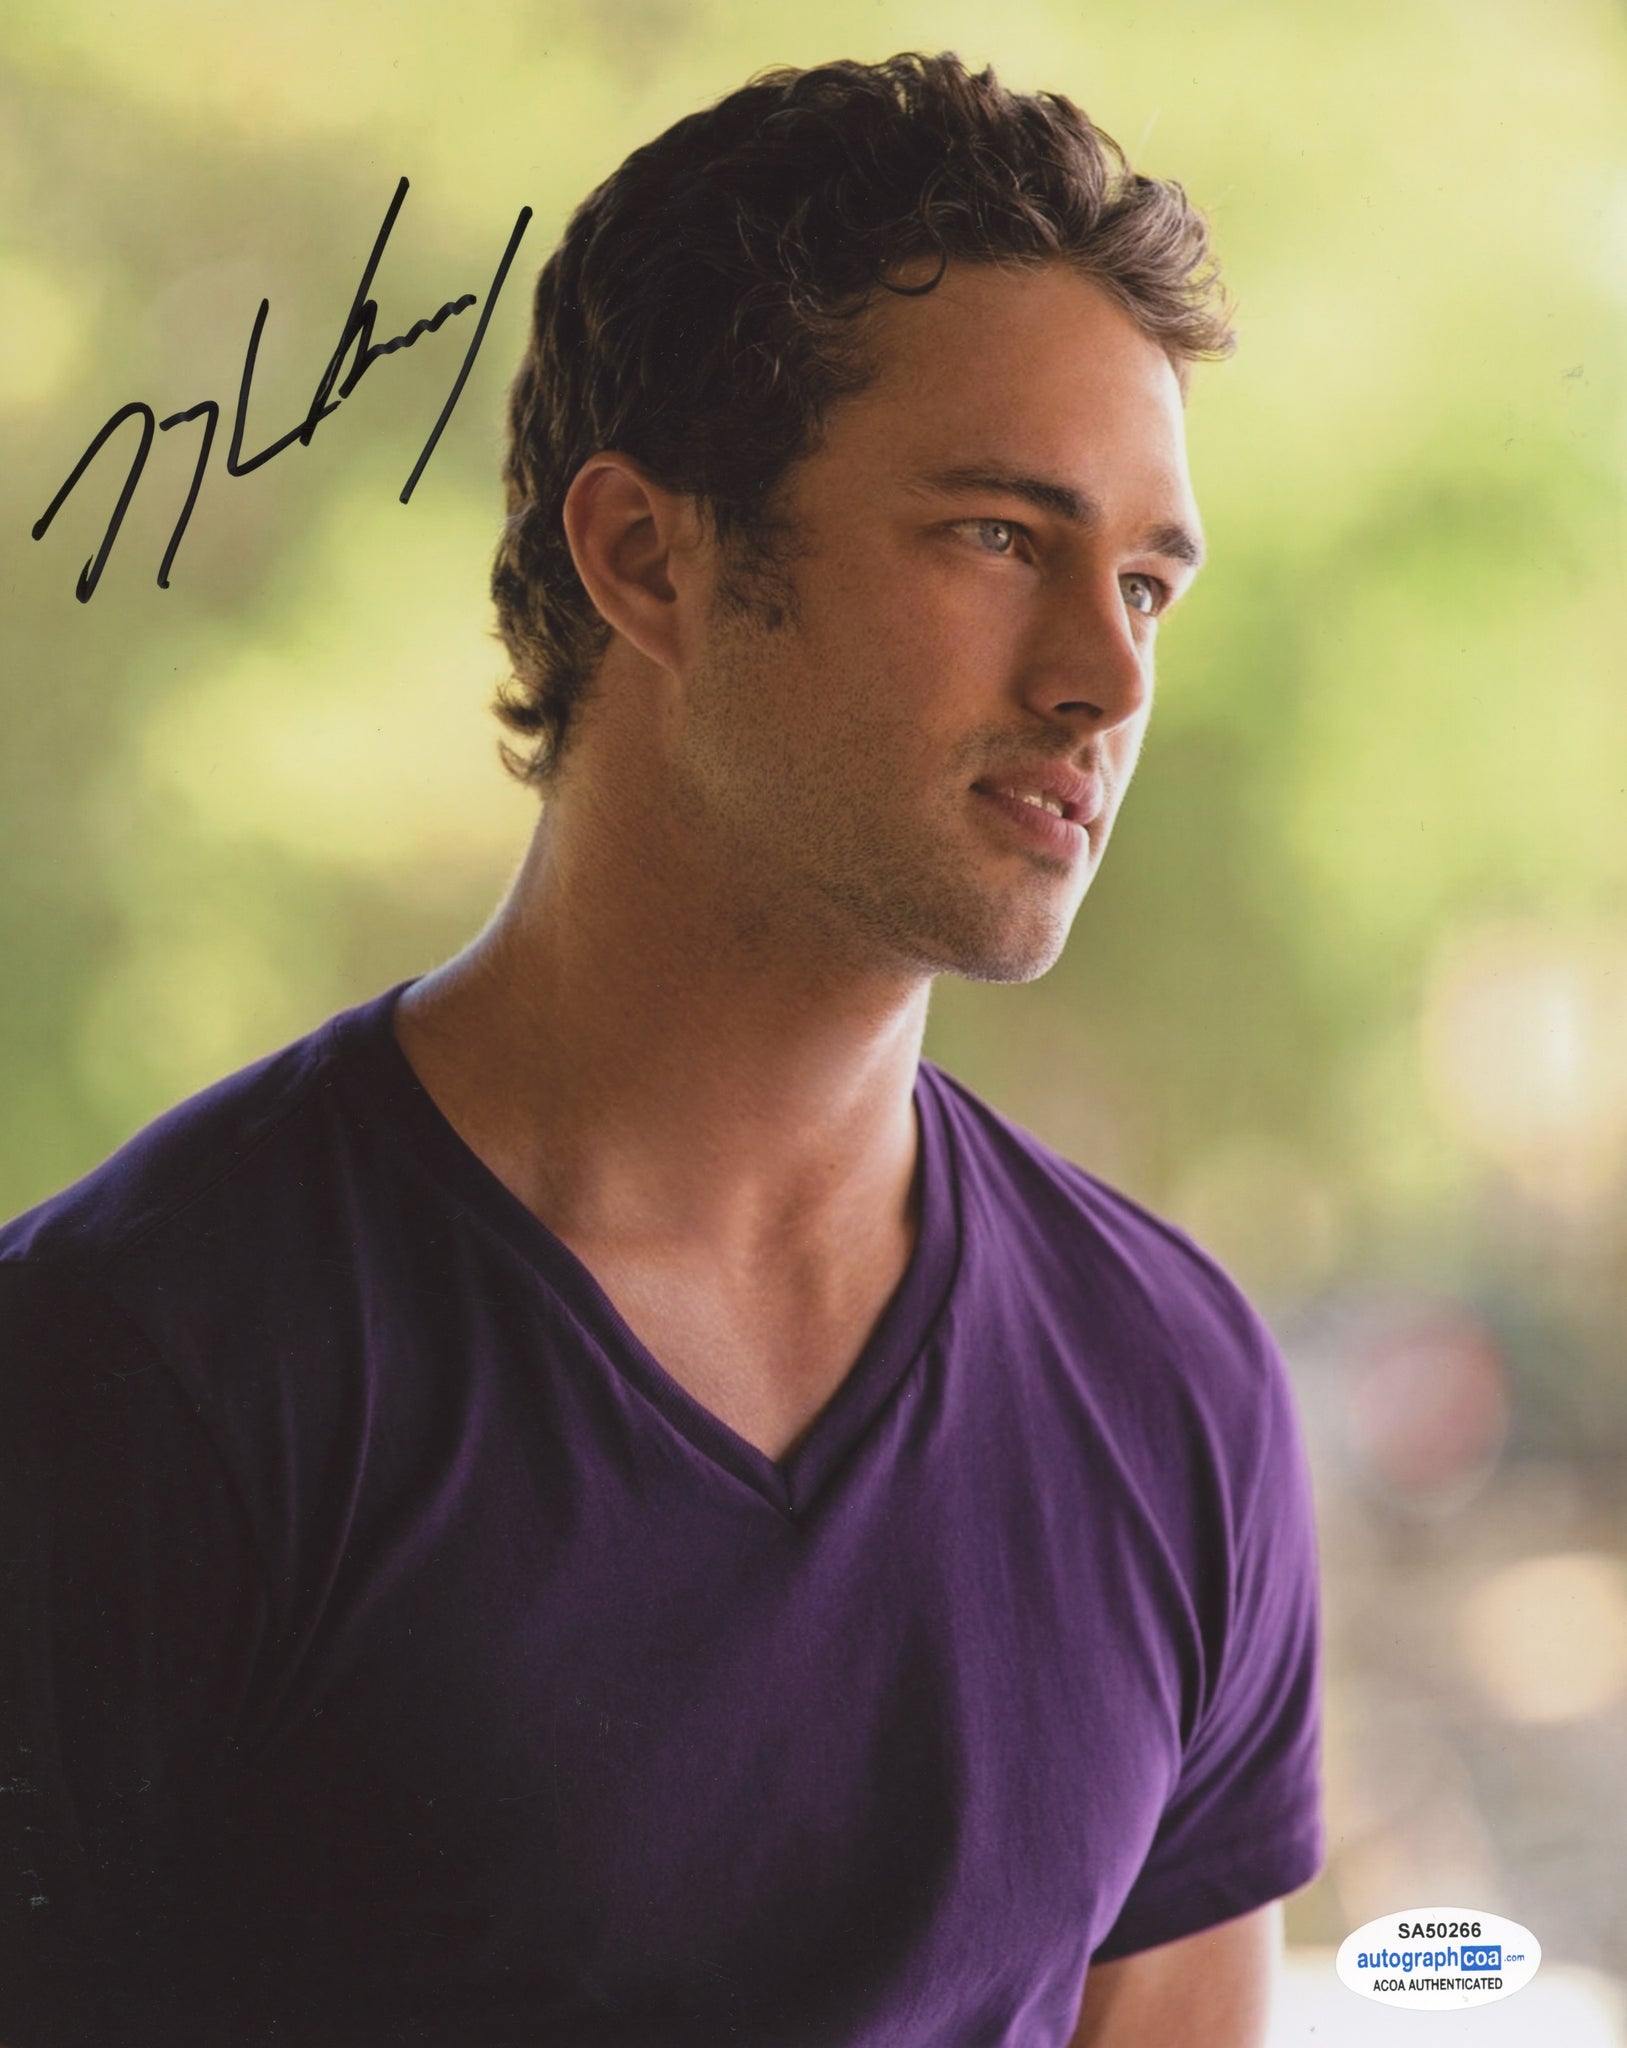 Taylor Kinney Vampire Diaries Signed Autograph 8x10 Photo ACOA